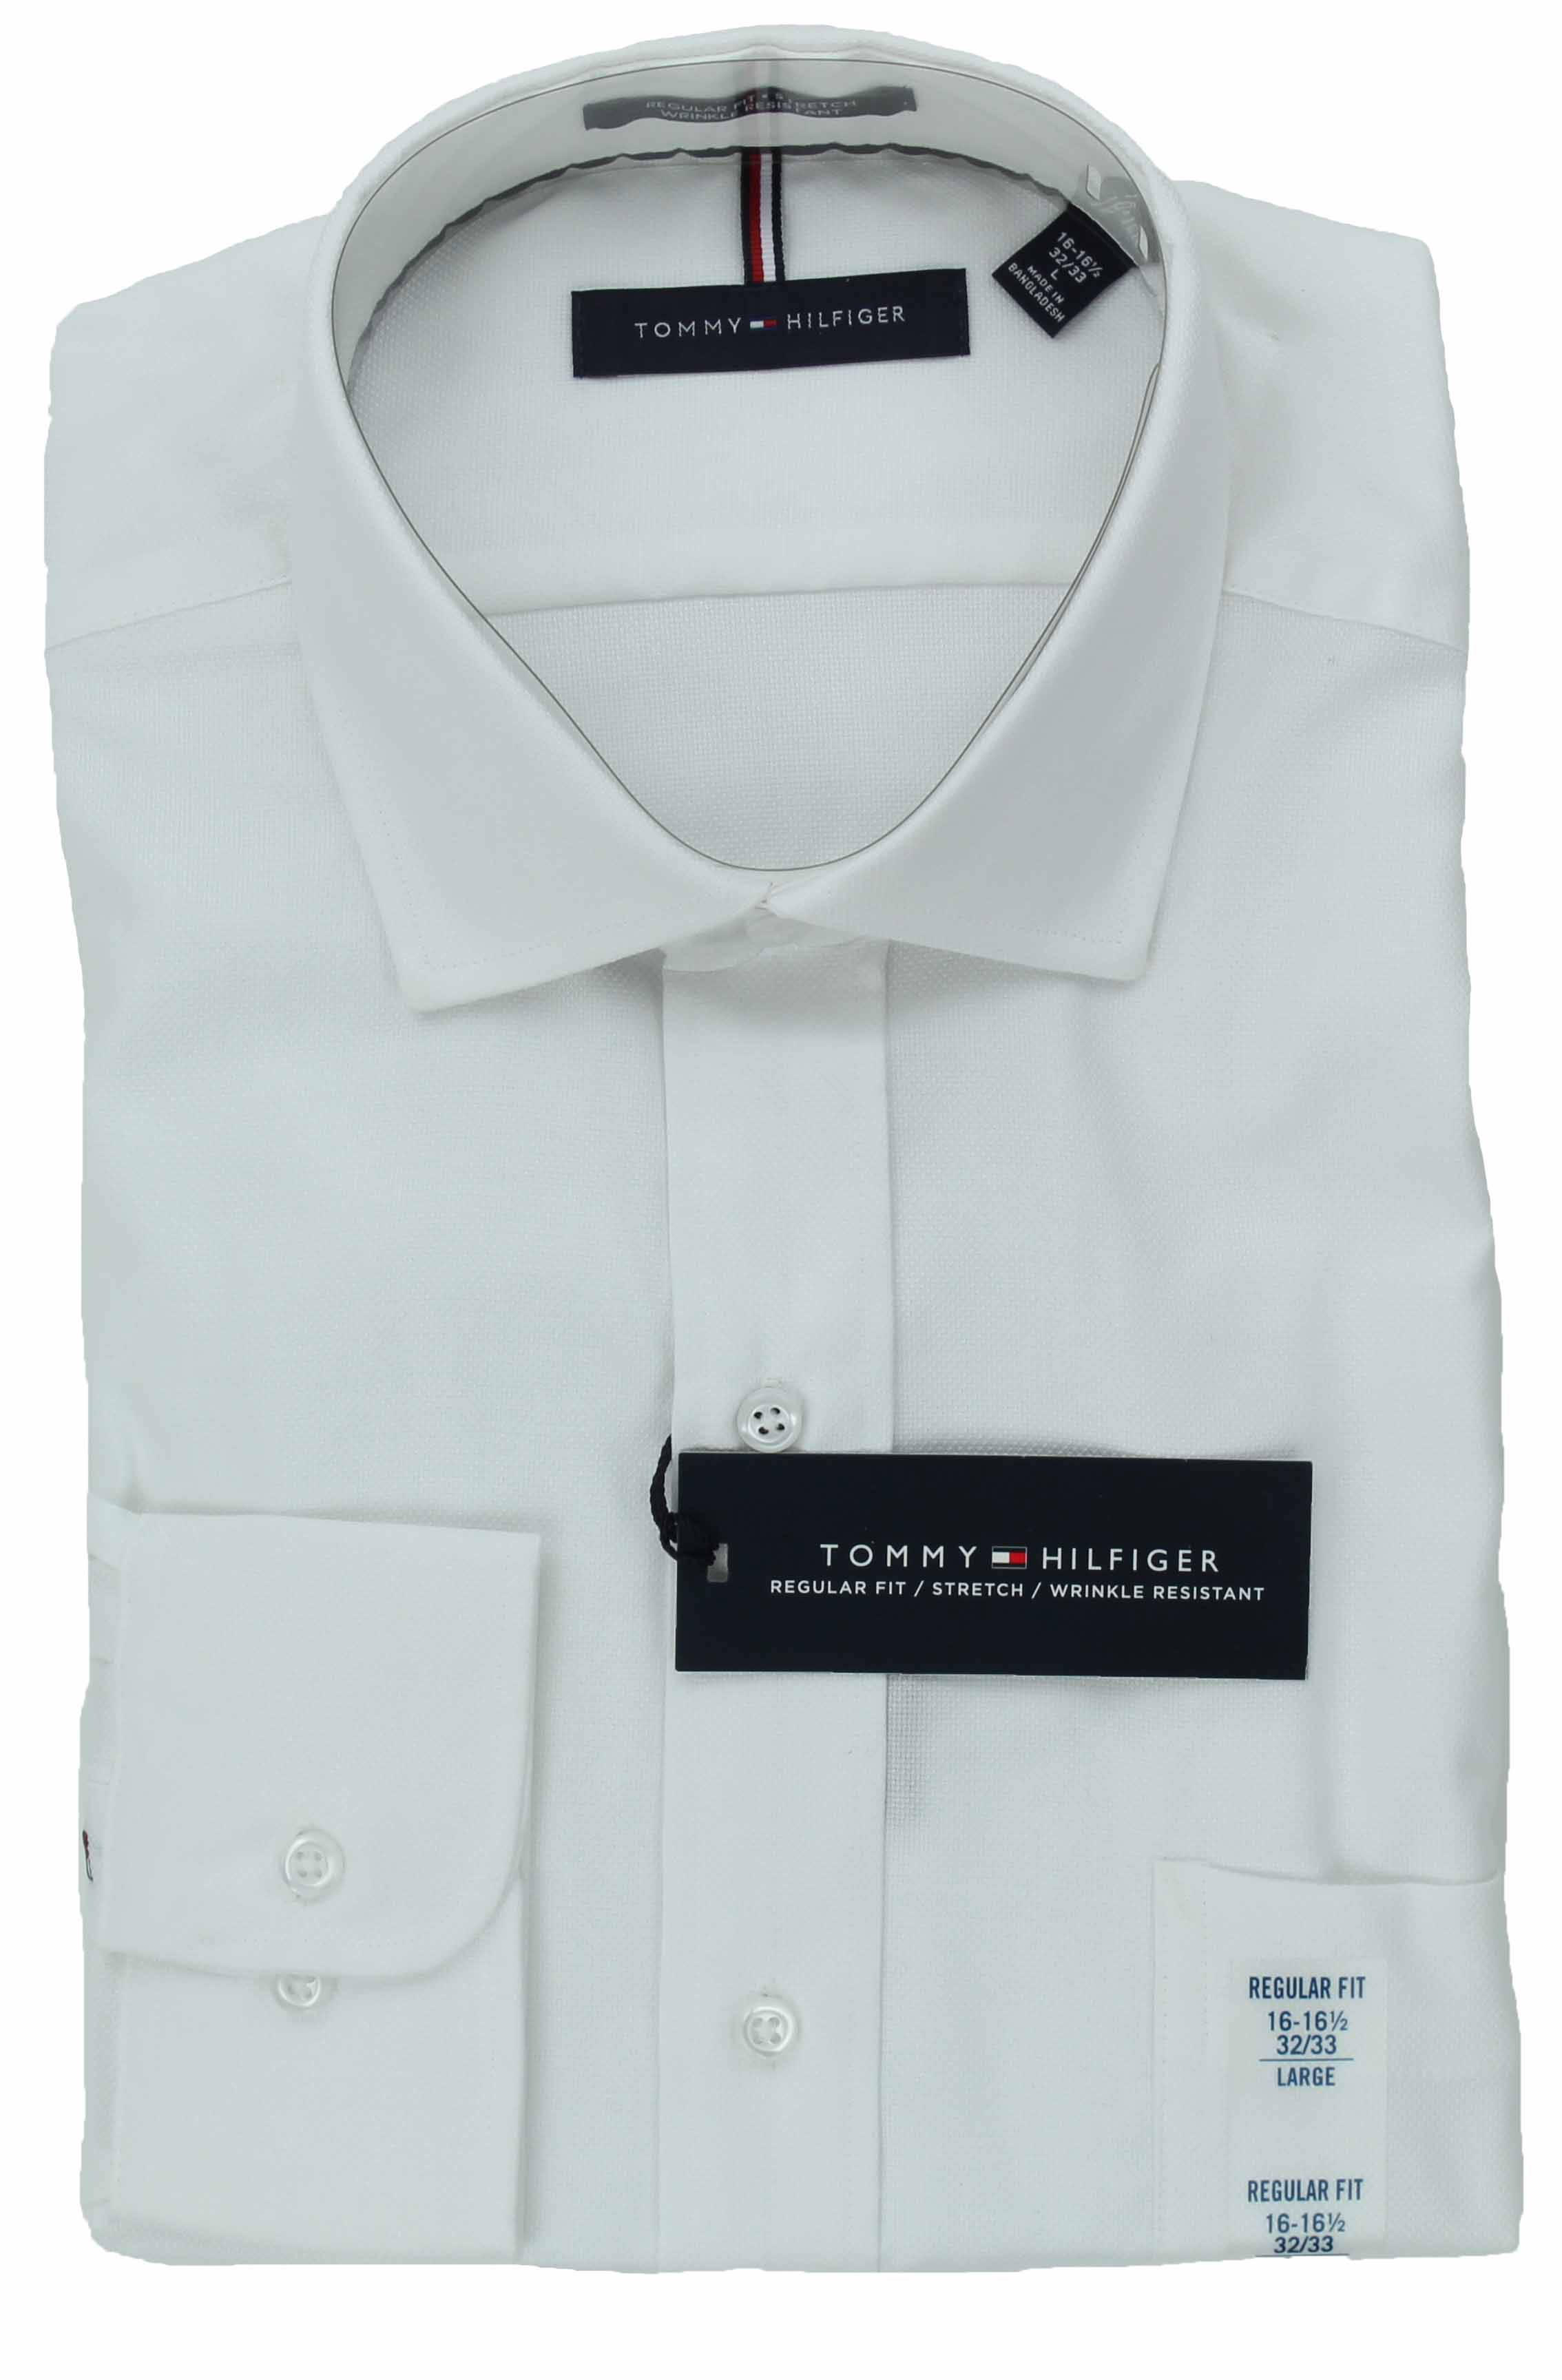 Tommy-Hilfiger-Mens-Long-Sleeve-Regular-Fit-Dress-Shirt miniature 11